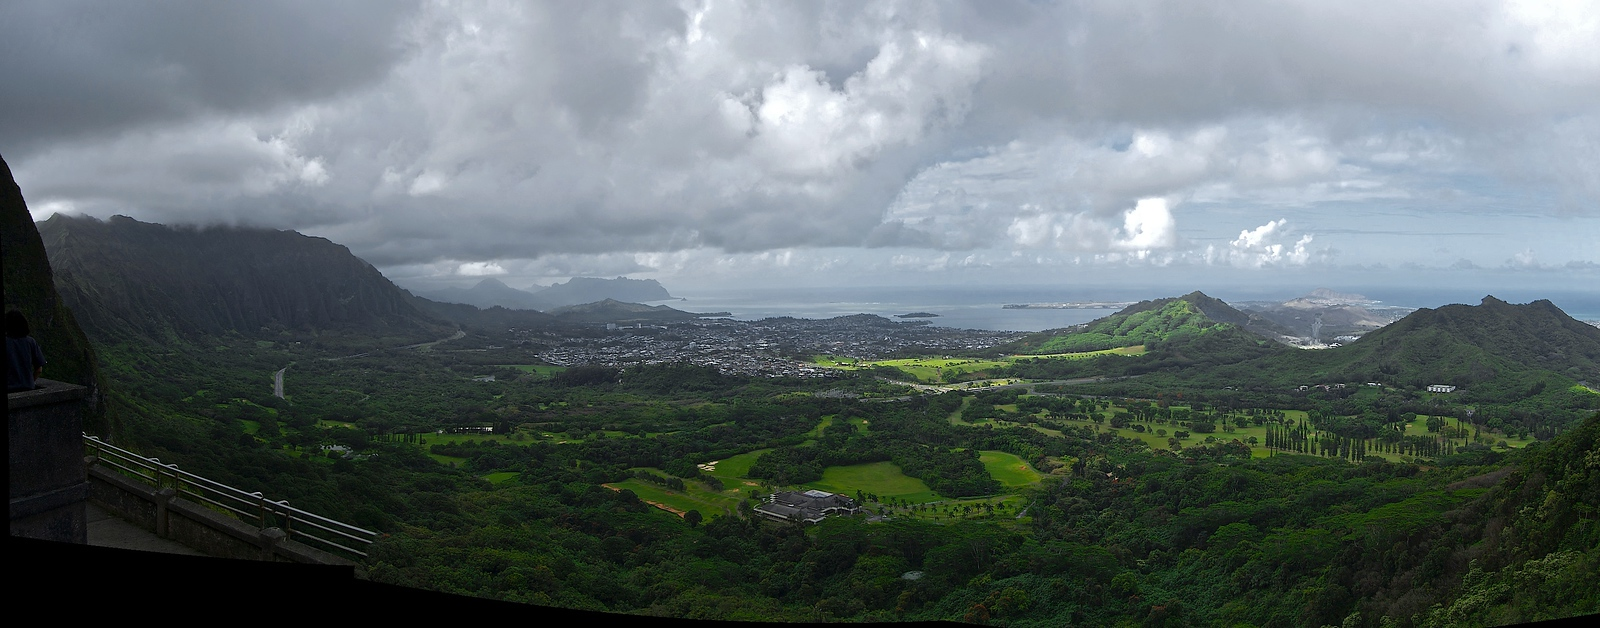 In 1795 King Kamehameha and 10,000 warriors drove the armies of O'ahu over these steep, forested cliffs, uniting the Hawai'ian Islands under his rule.<br /> <br /> The Look Out: a panoramic view of the windward (NE) coast of Oʻahu; including Kaneohe Bay, Chinaman's Hat, and Hawaii Pacific's Windward Campus.